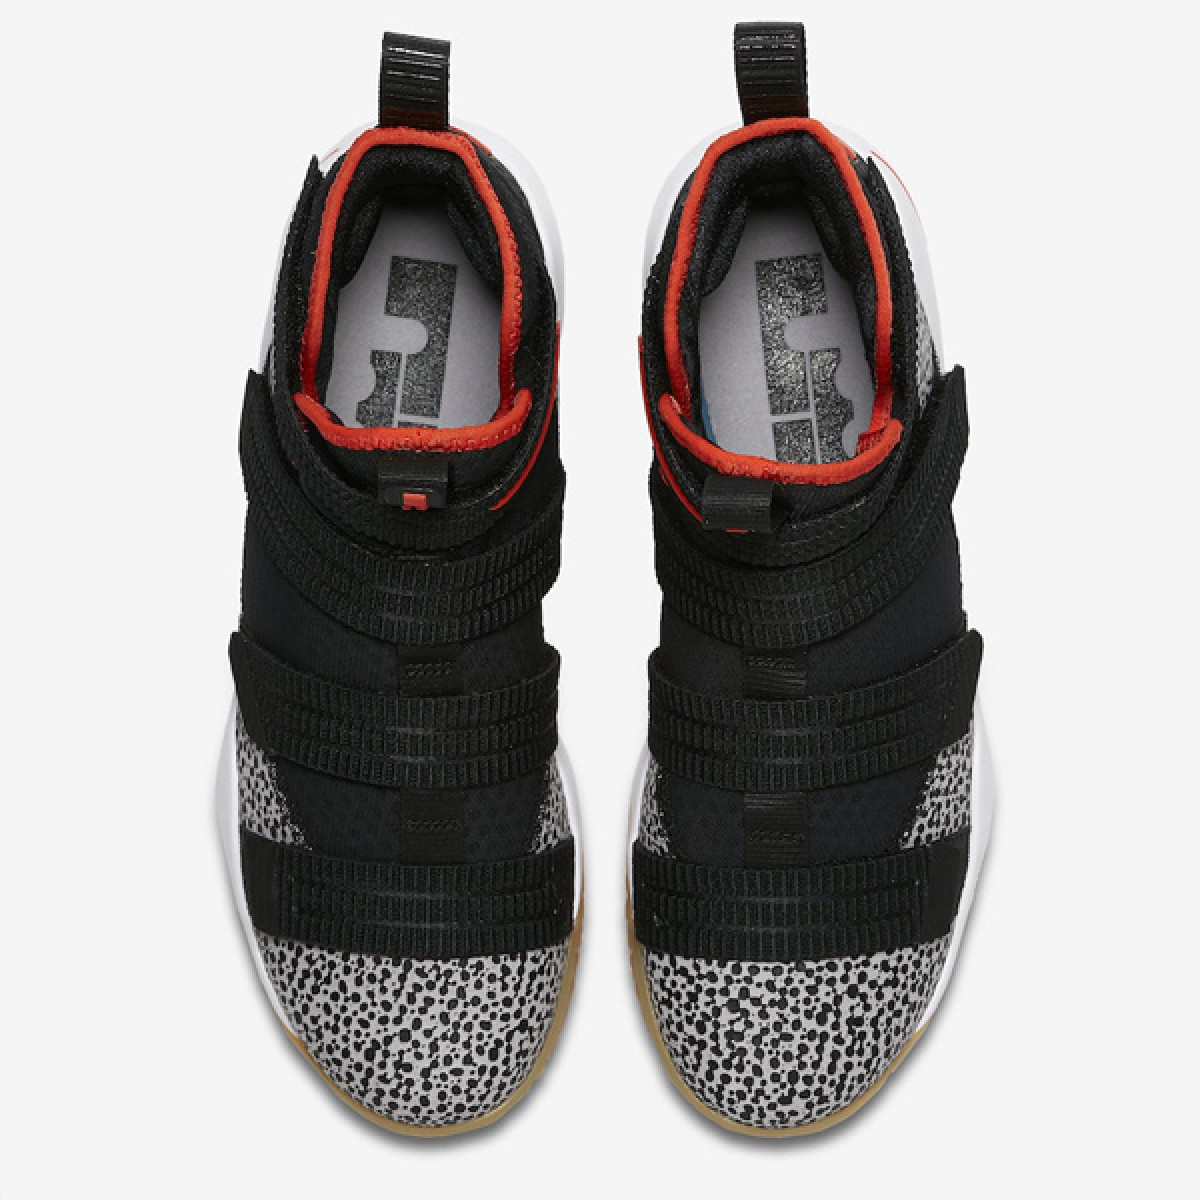 8a0ab8c8a86d Buy Nike Lebron Soldier XI SFG  Safari  Basketball shoes   sneakers